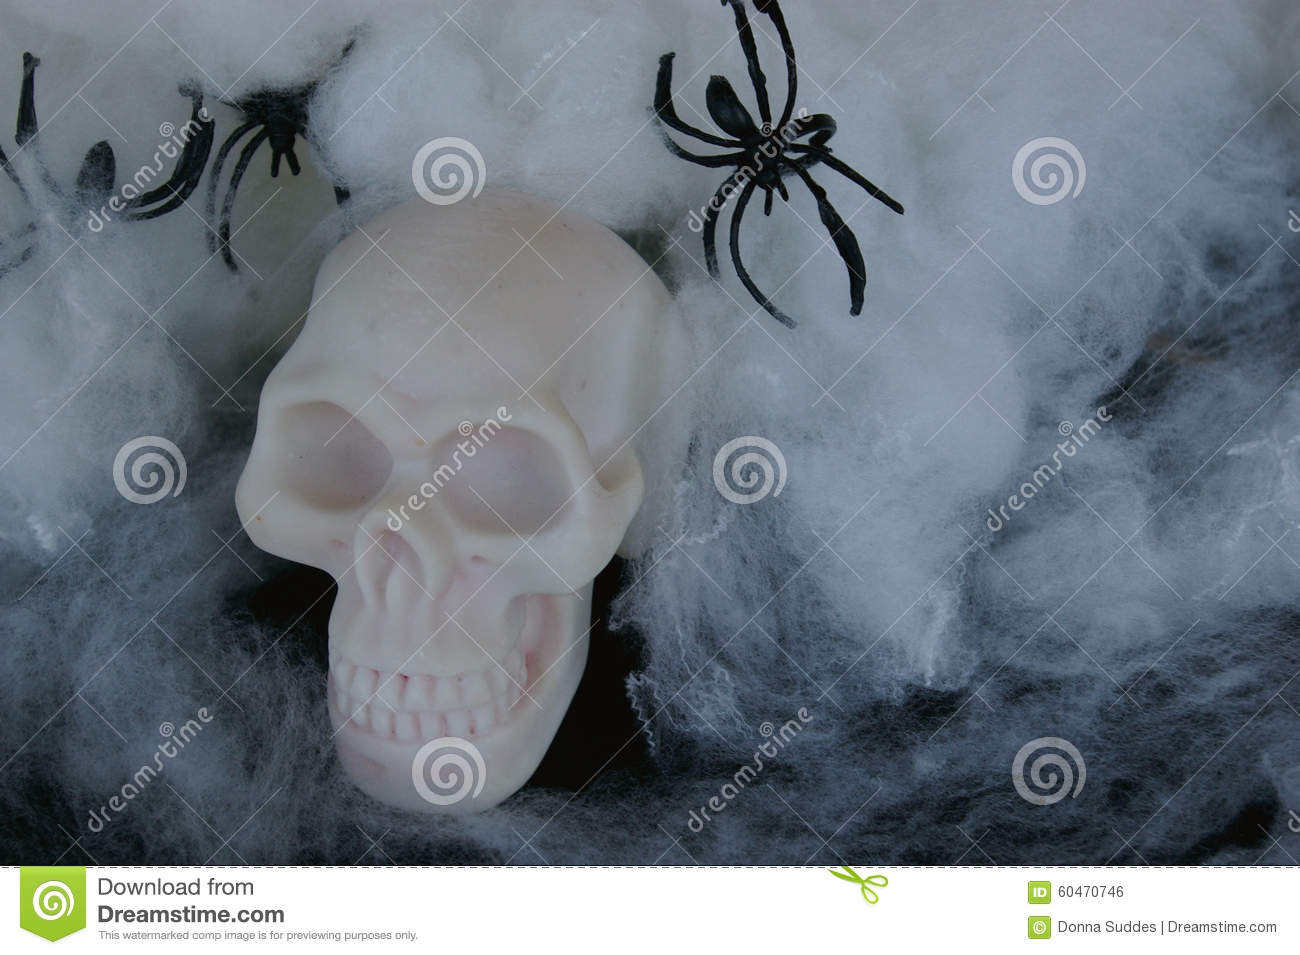 Fake Skull With Fake Spider Webs Around It Stock Photo Image Of